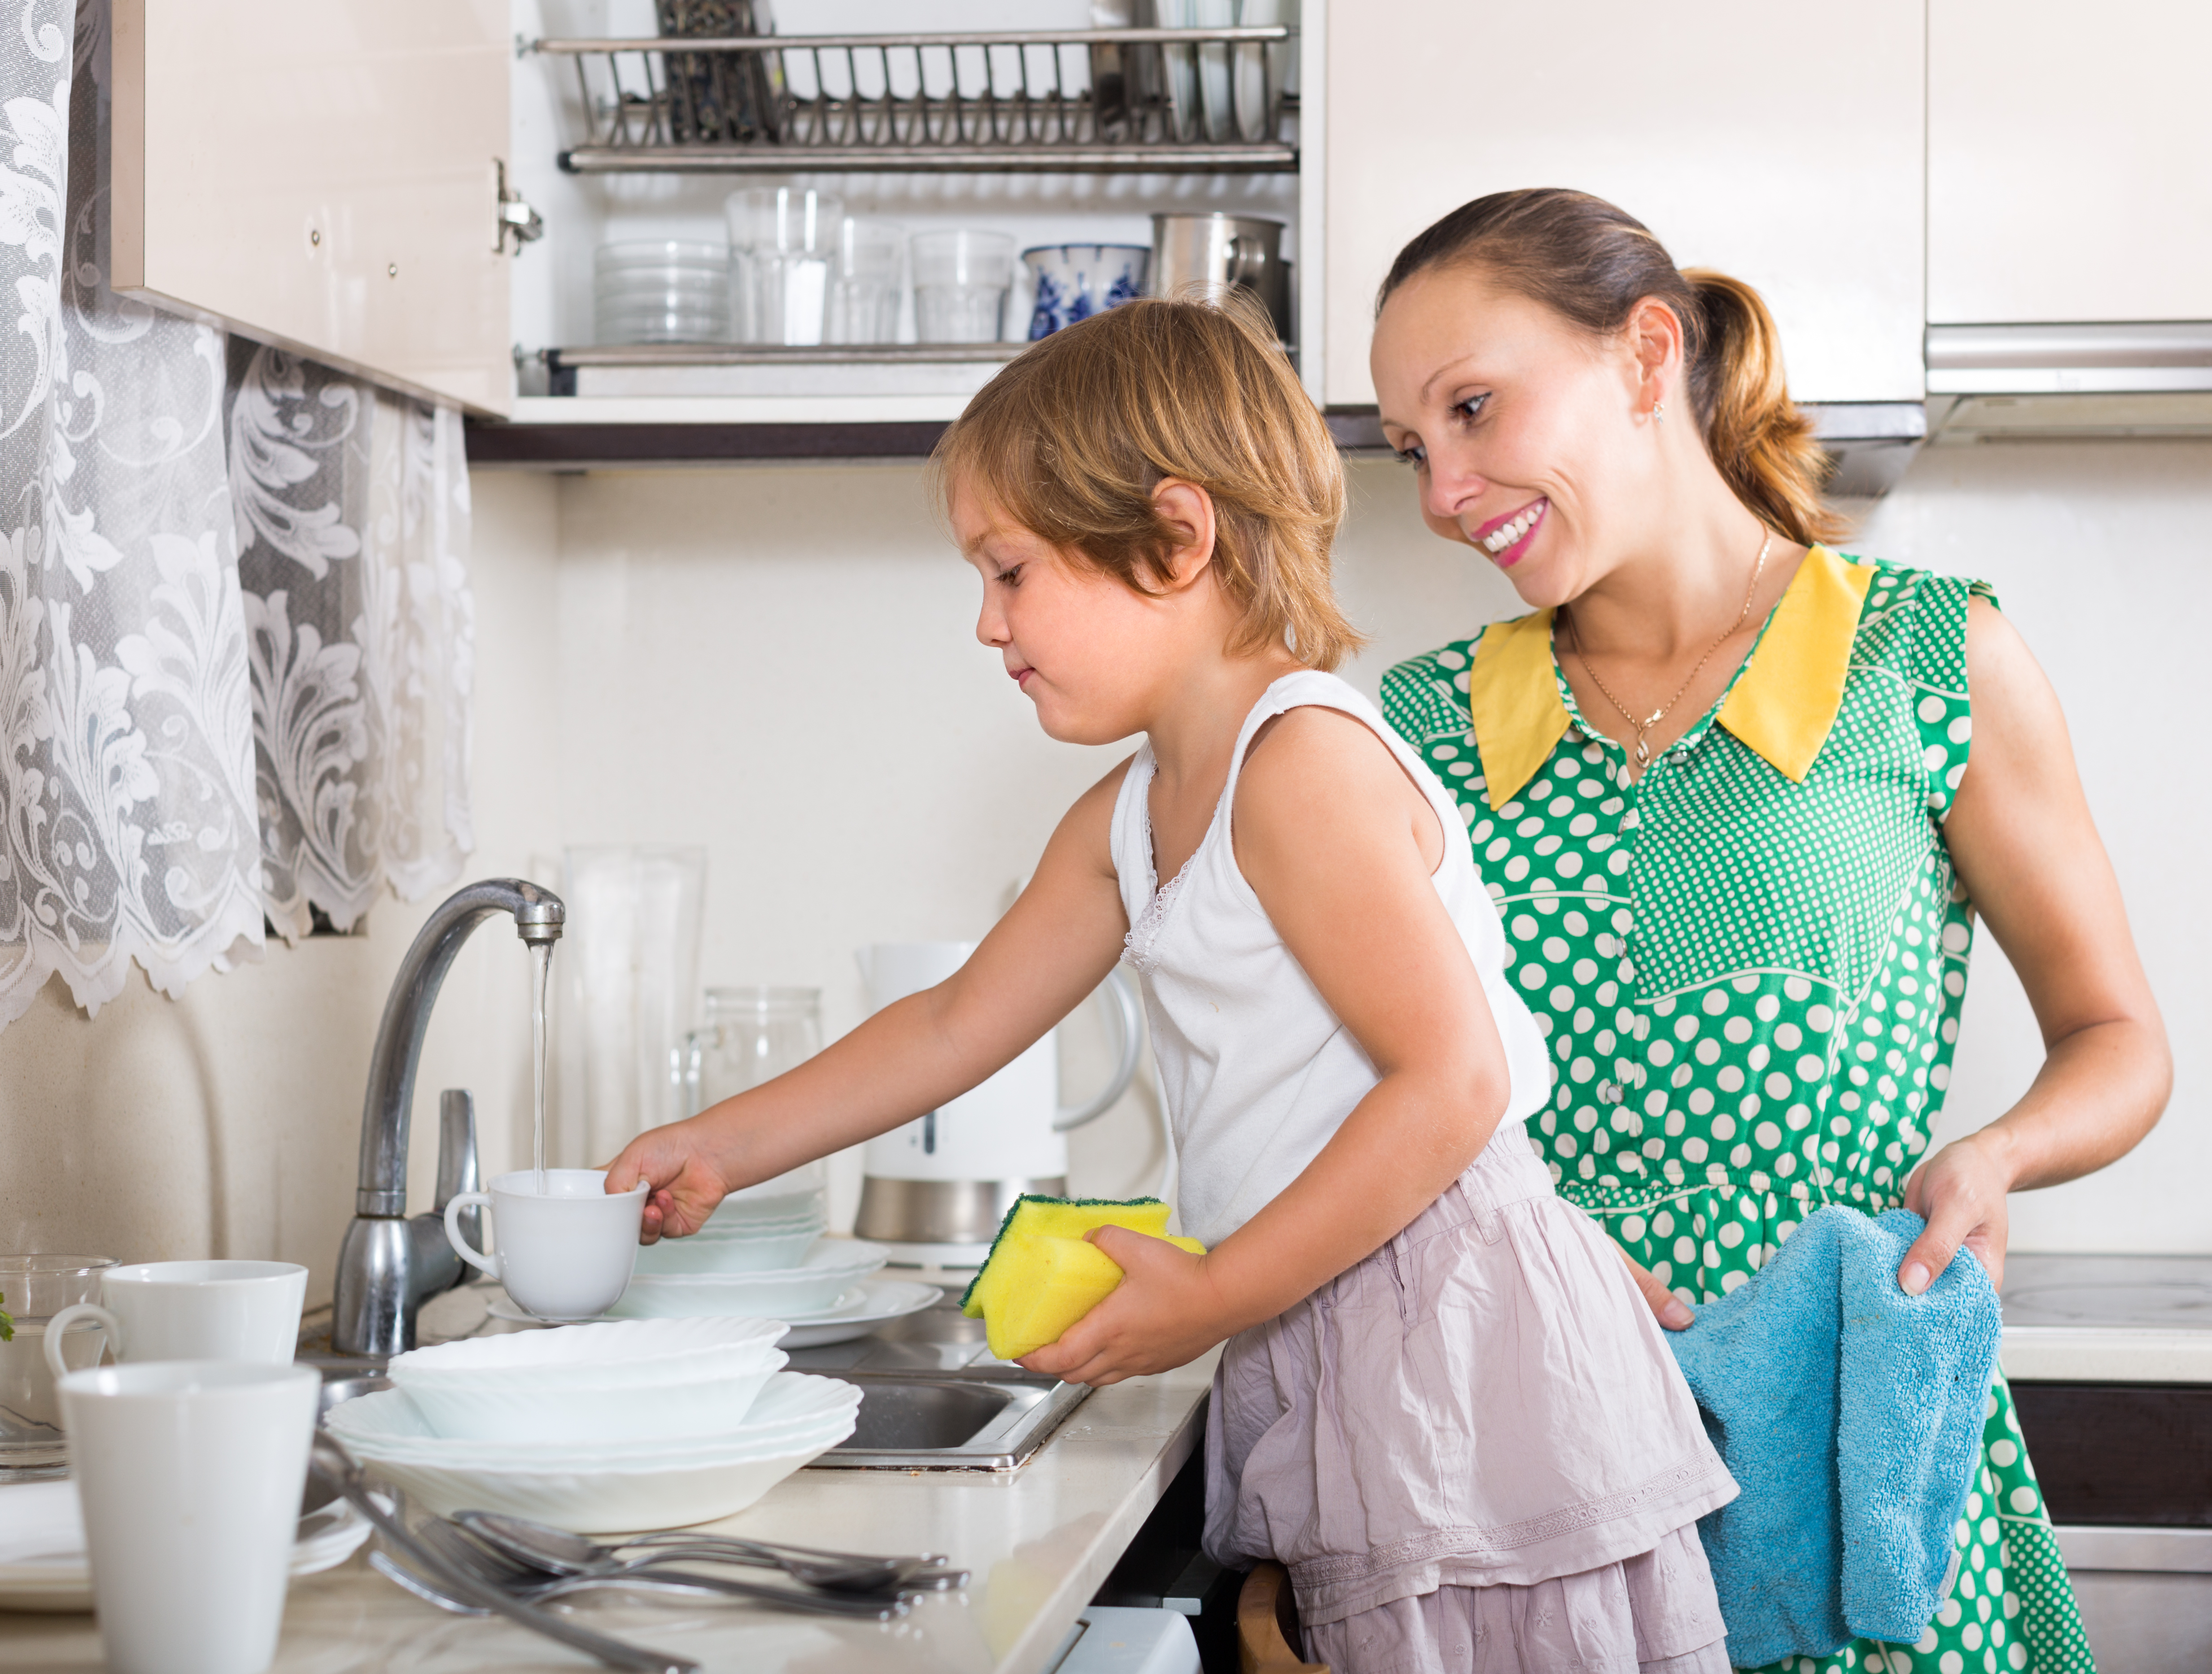 Girl helping mother washing dishes